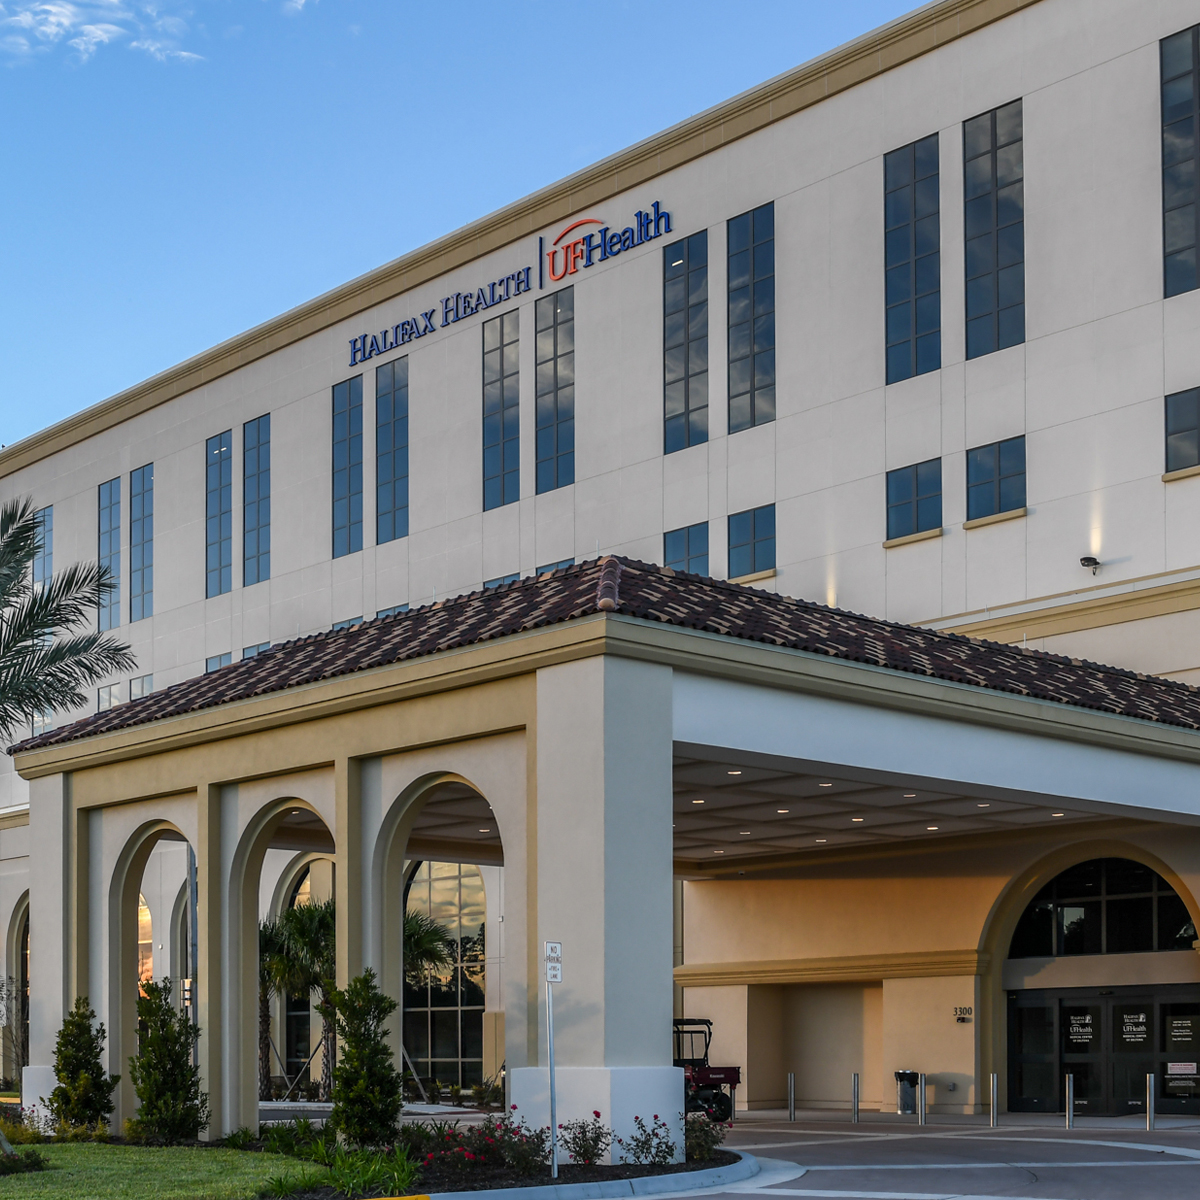 Image of the Exterior of Halifax Health | UF Health - Medical Center of Deltona